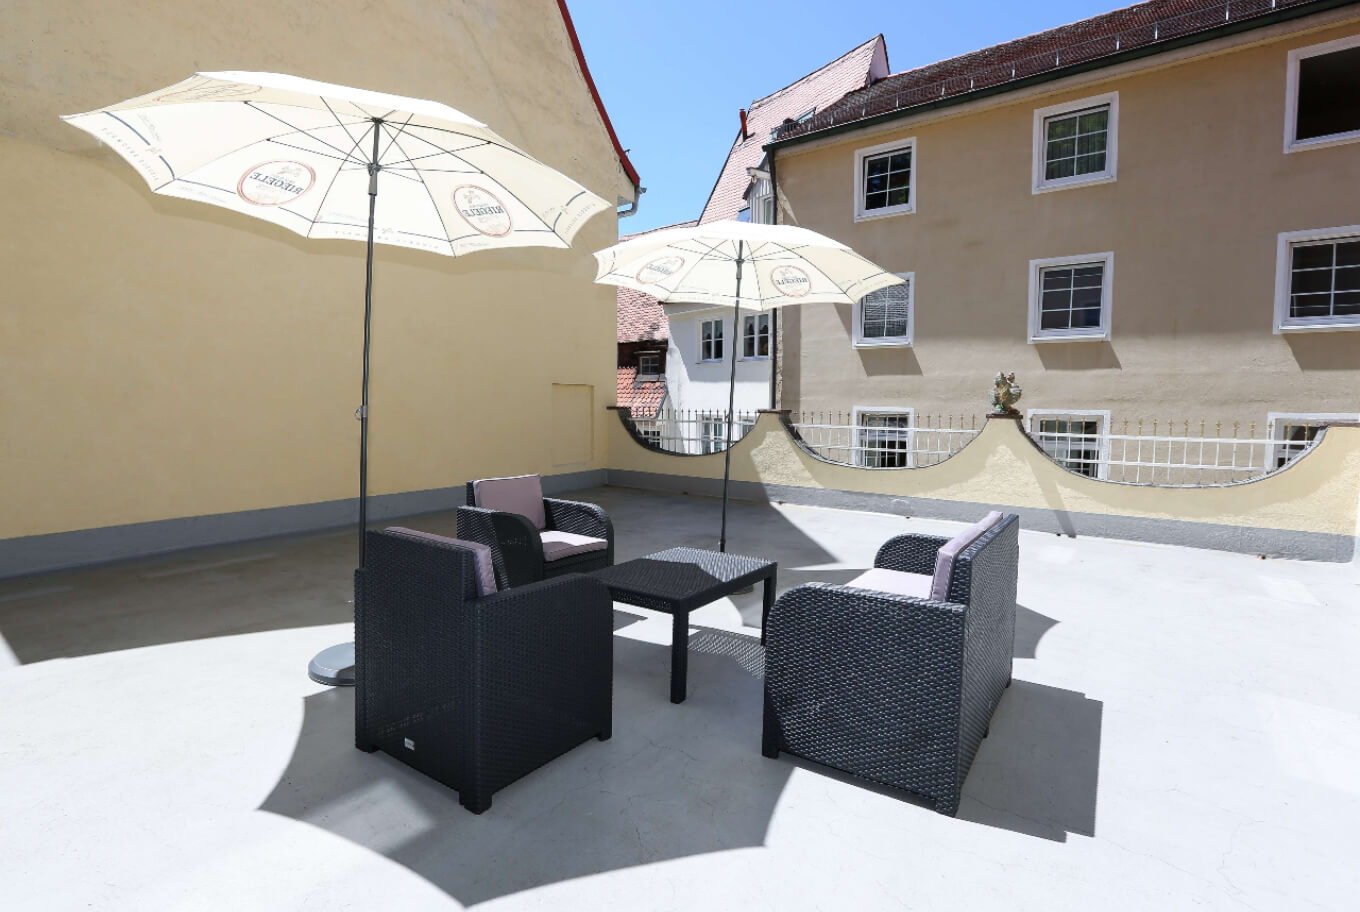 Our suites outdoor terrace in | Arthotel ANA Landsberg am Lech